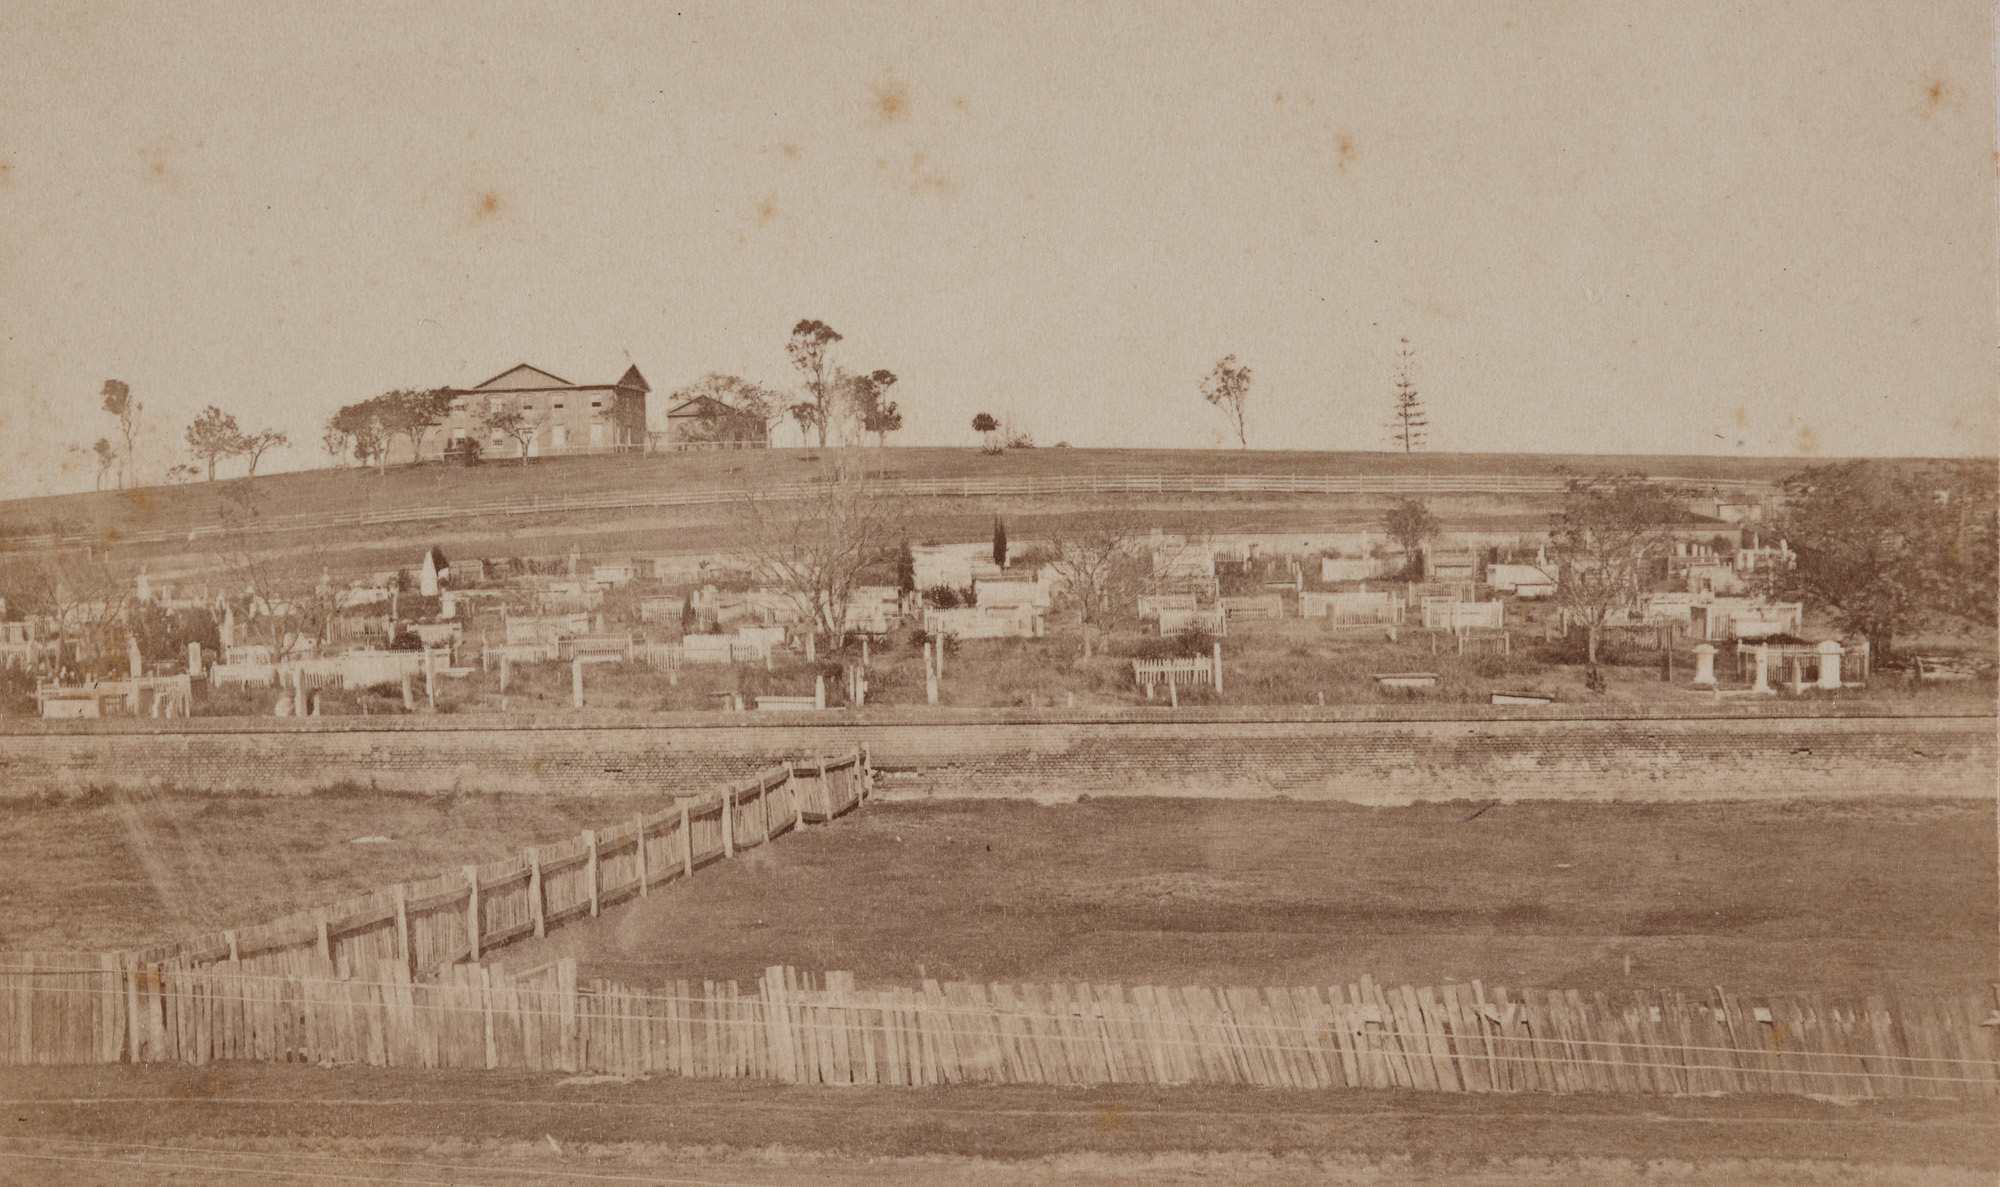 St John's Cemetery, Parramatta, around July 1870 / American and Australasian Photographic Company